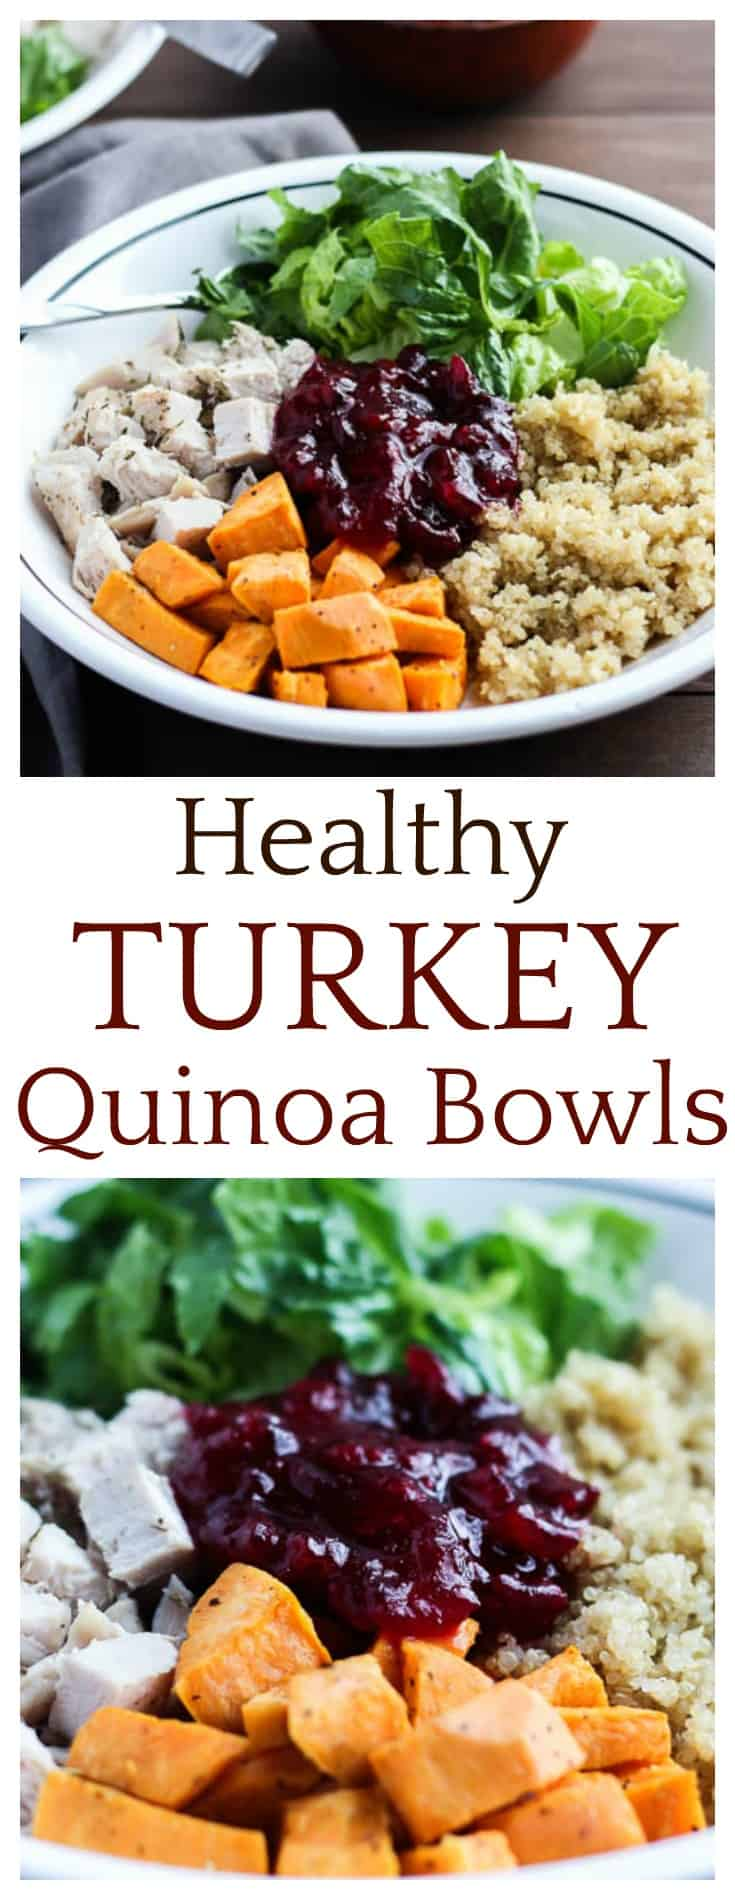 Healthy Turkey Quinoa Bowls are a great, new way to use leftover Thanksgiving turkey. They can also easily be made from scratch! These bowls make a healthy and delicious lunch or dinner!